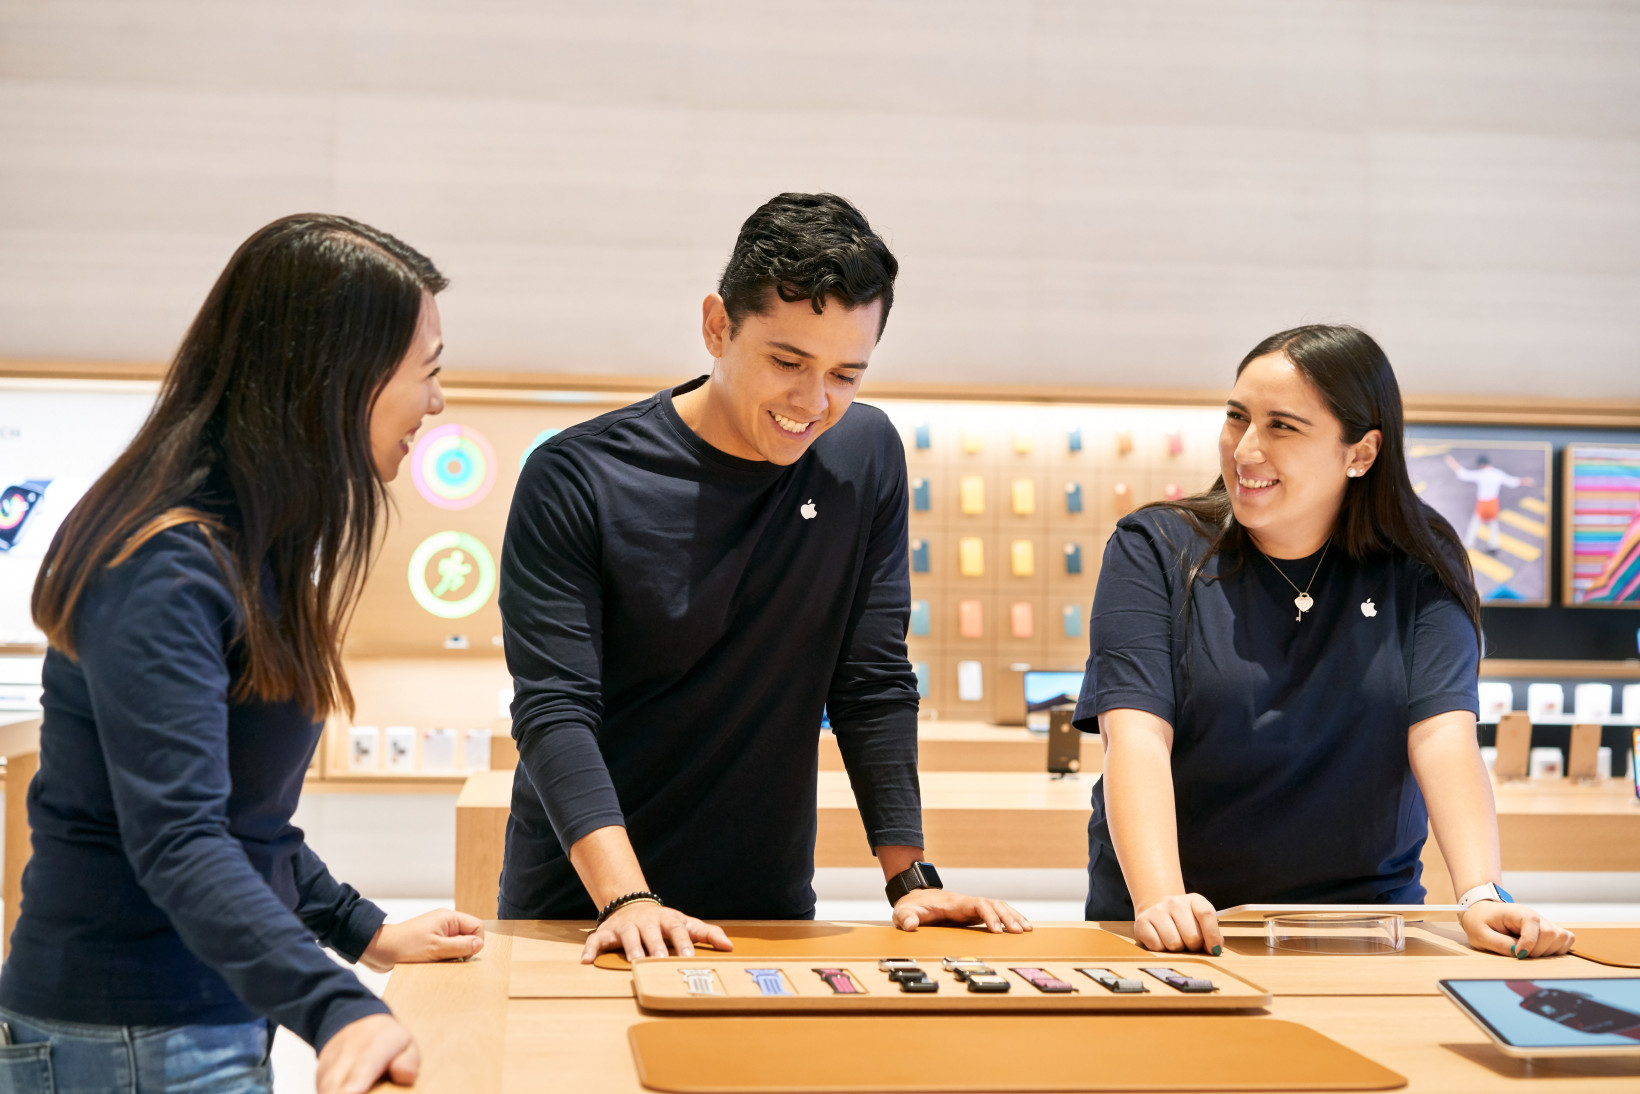 Apple Store employees at its outlet in Antara, Mexico